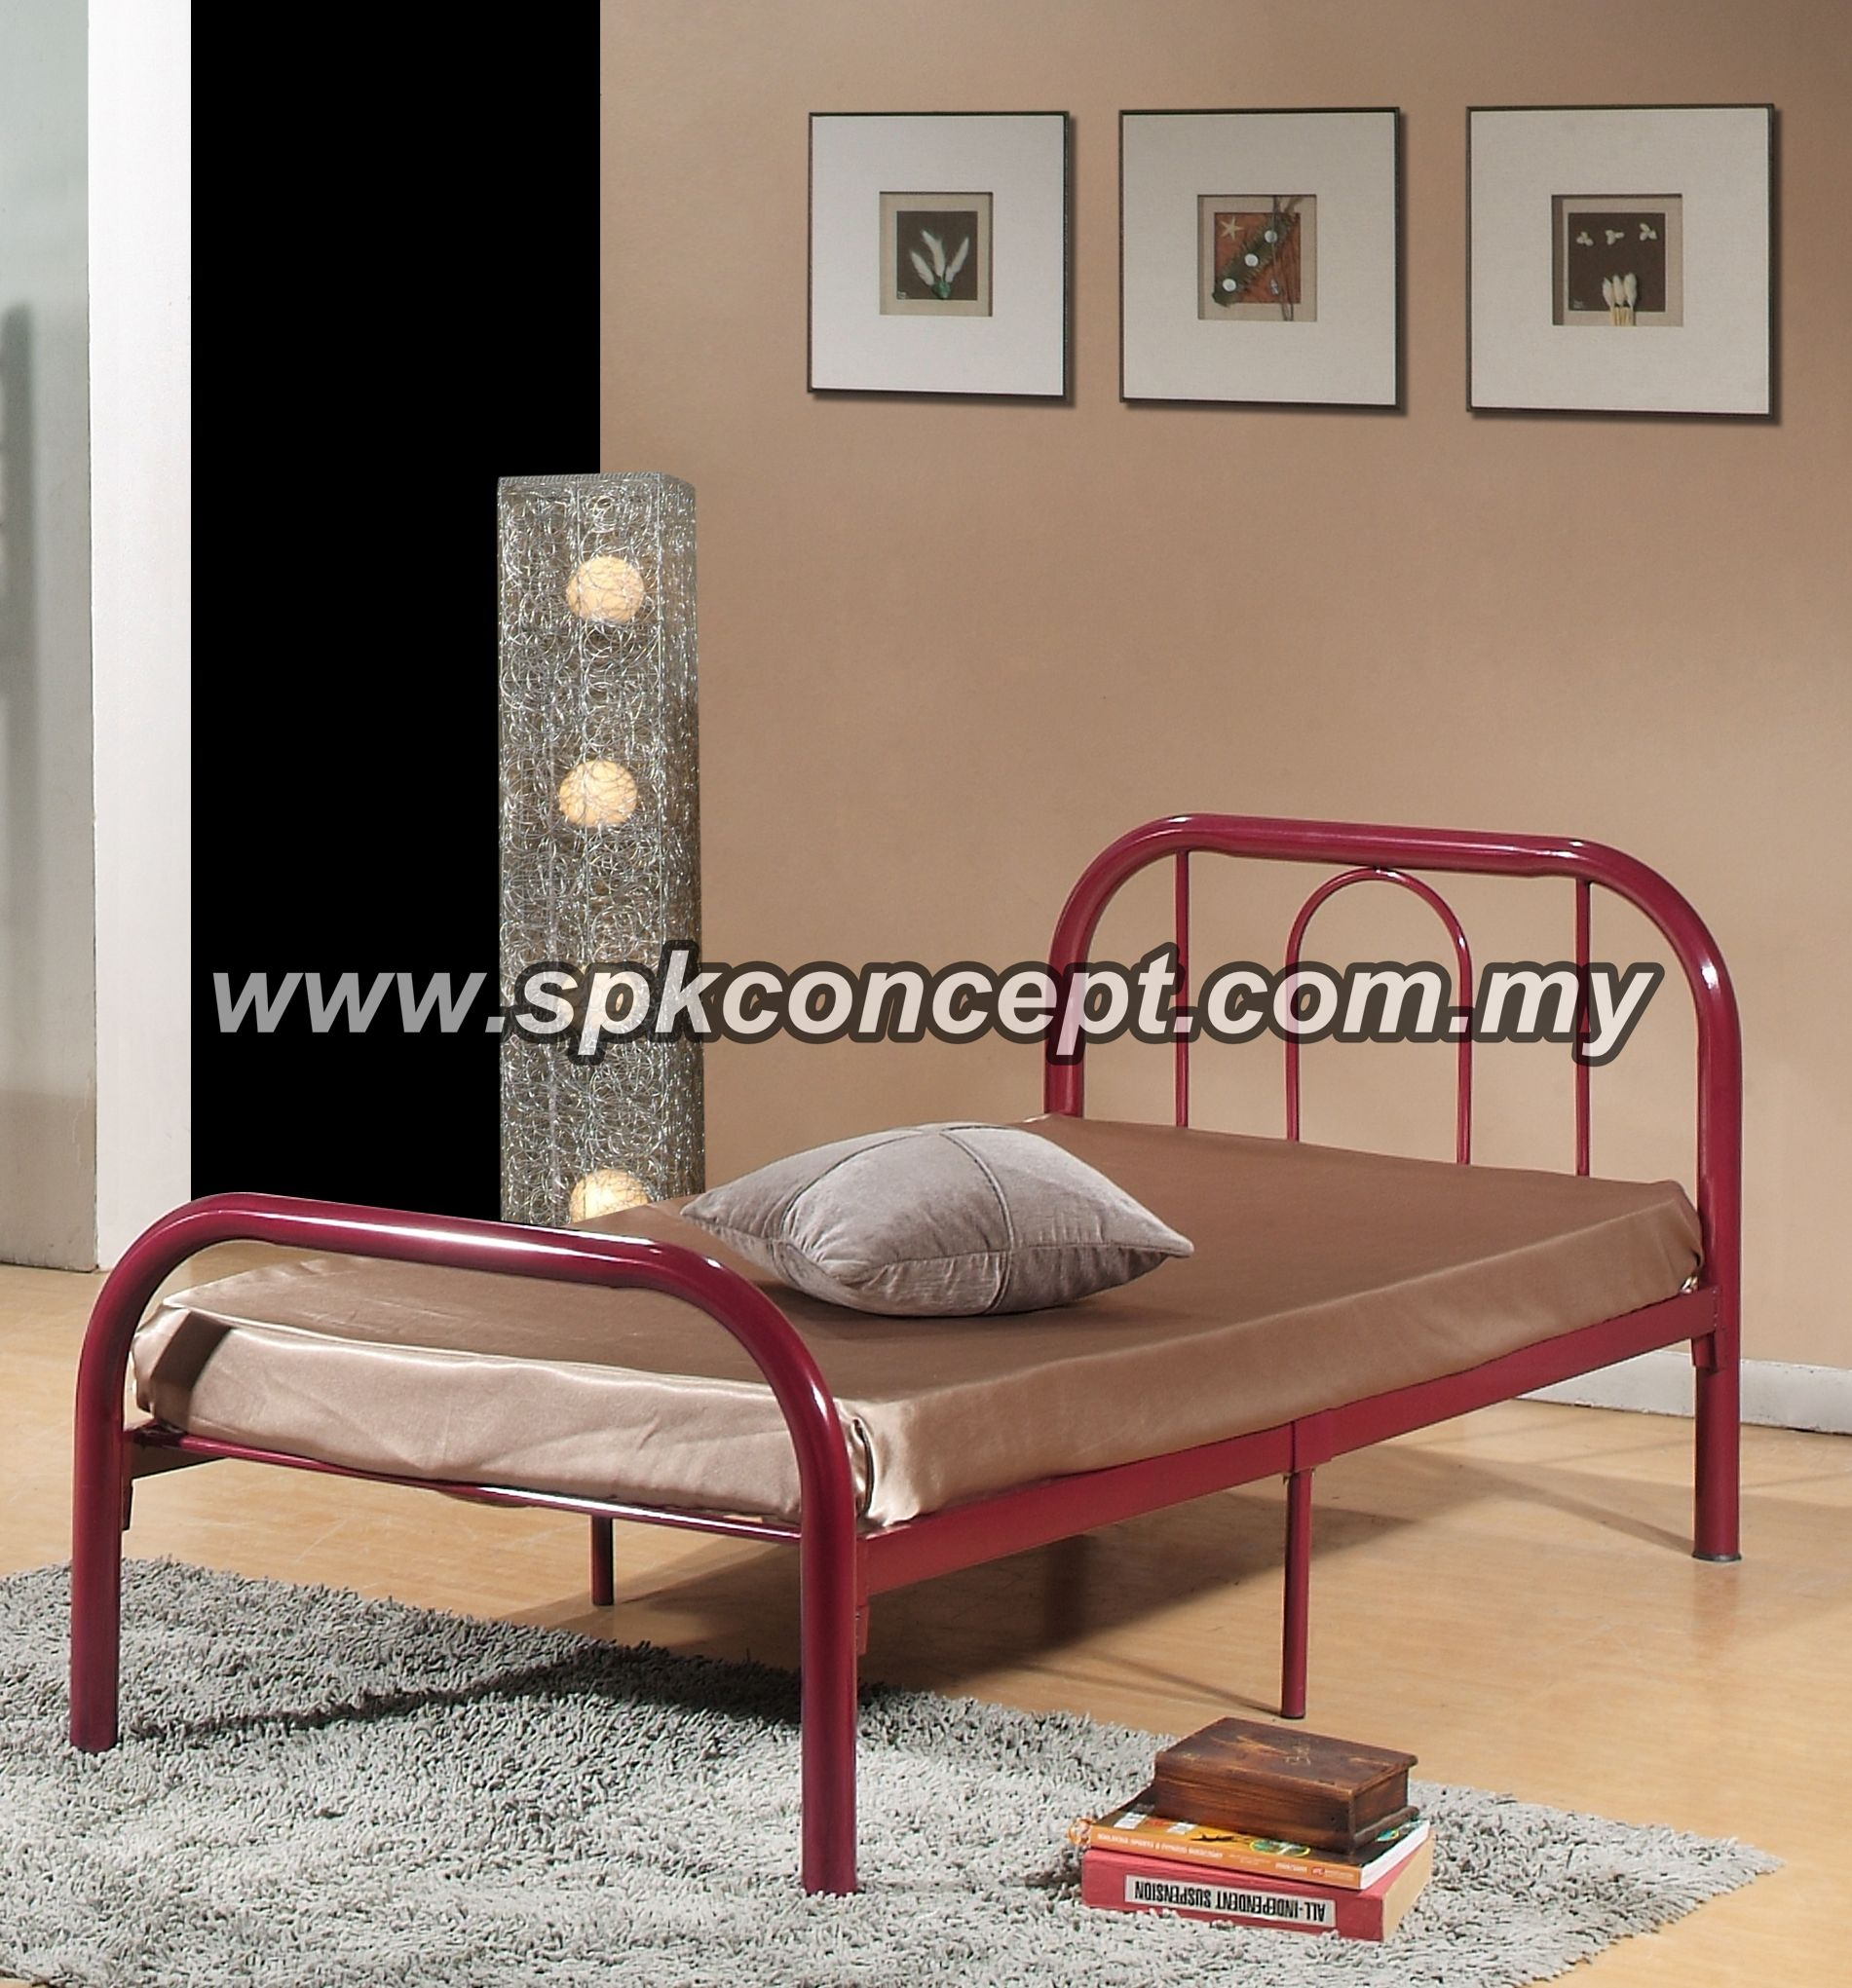 Foldable Single Bed Frame Malaysia Bed Frame Ideas